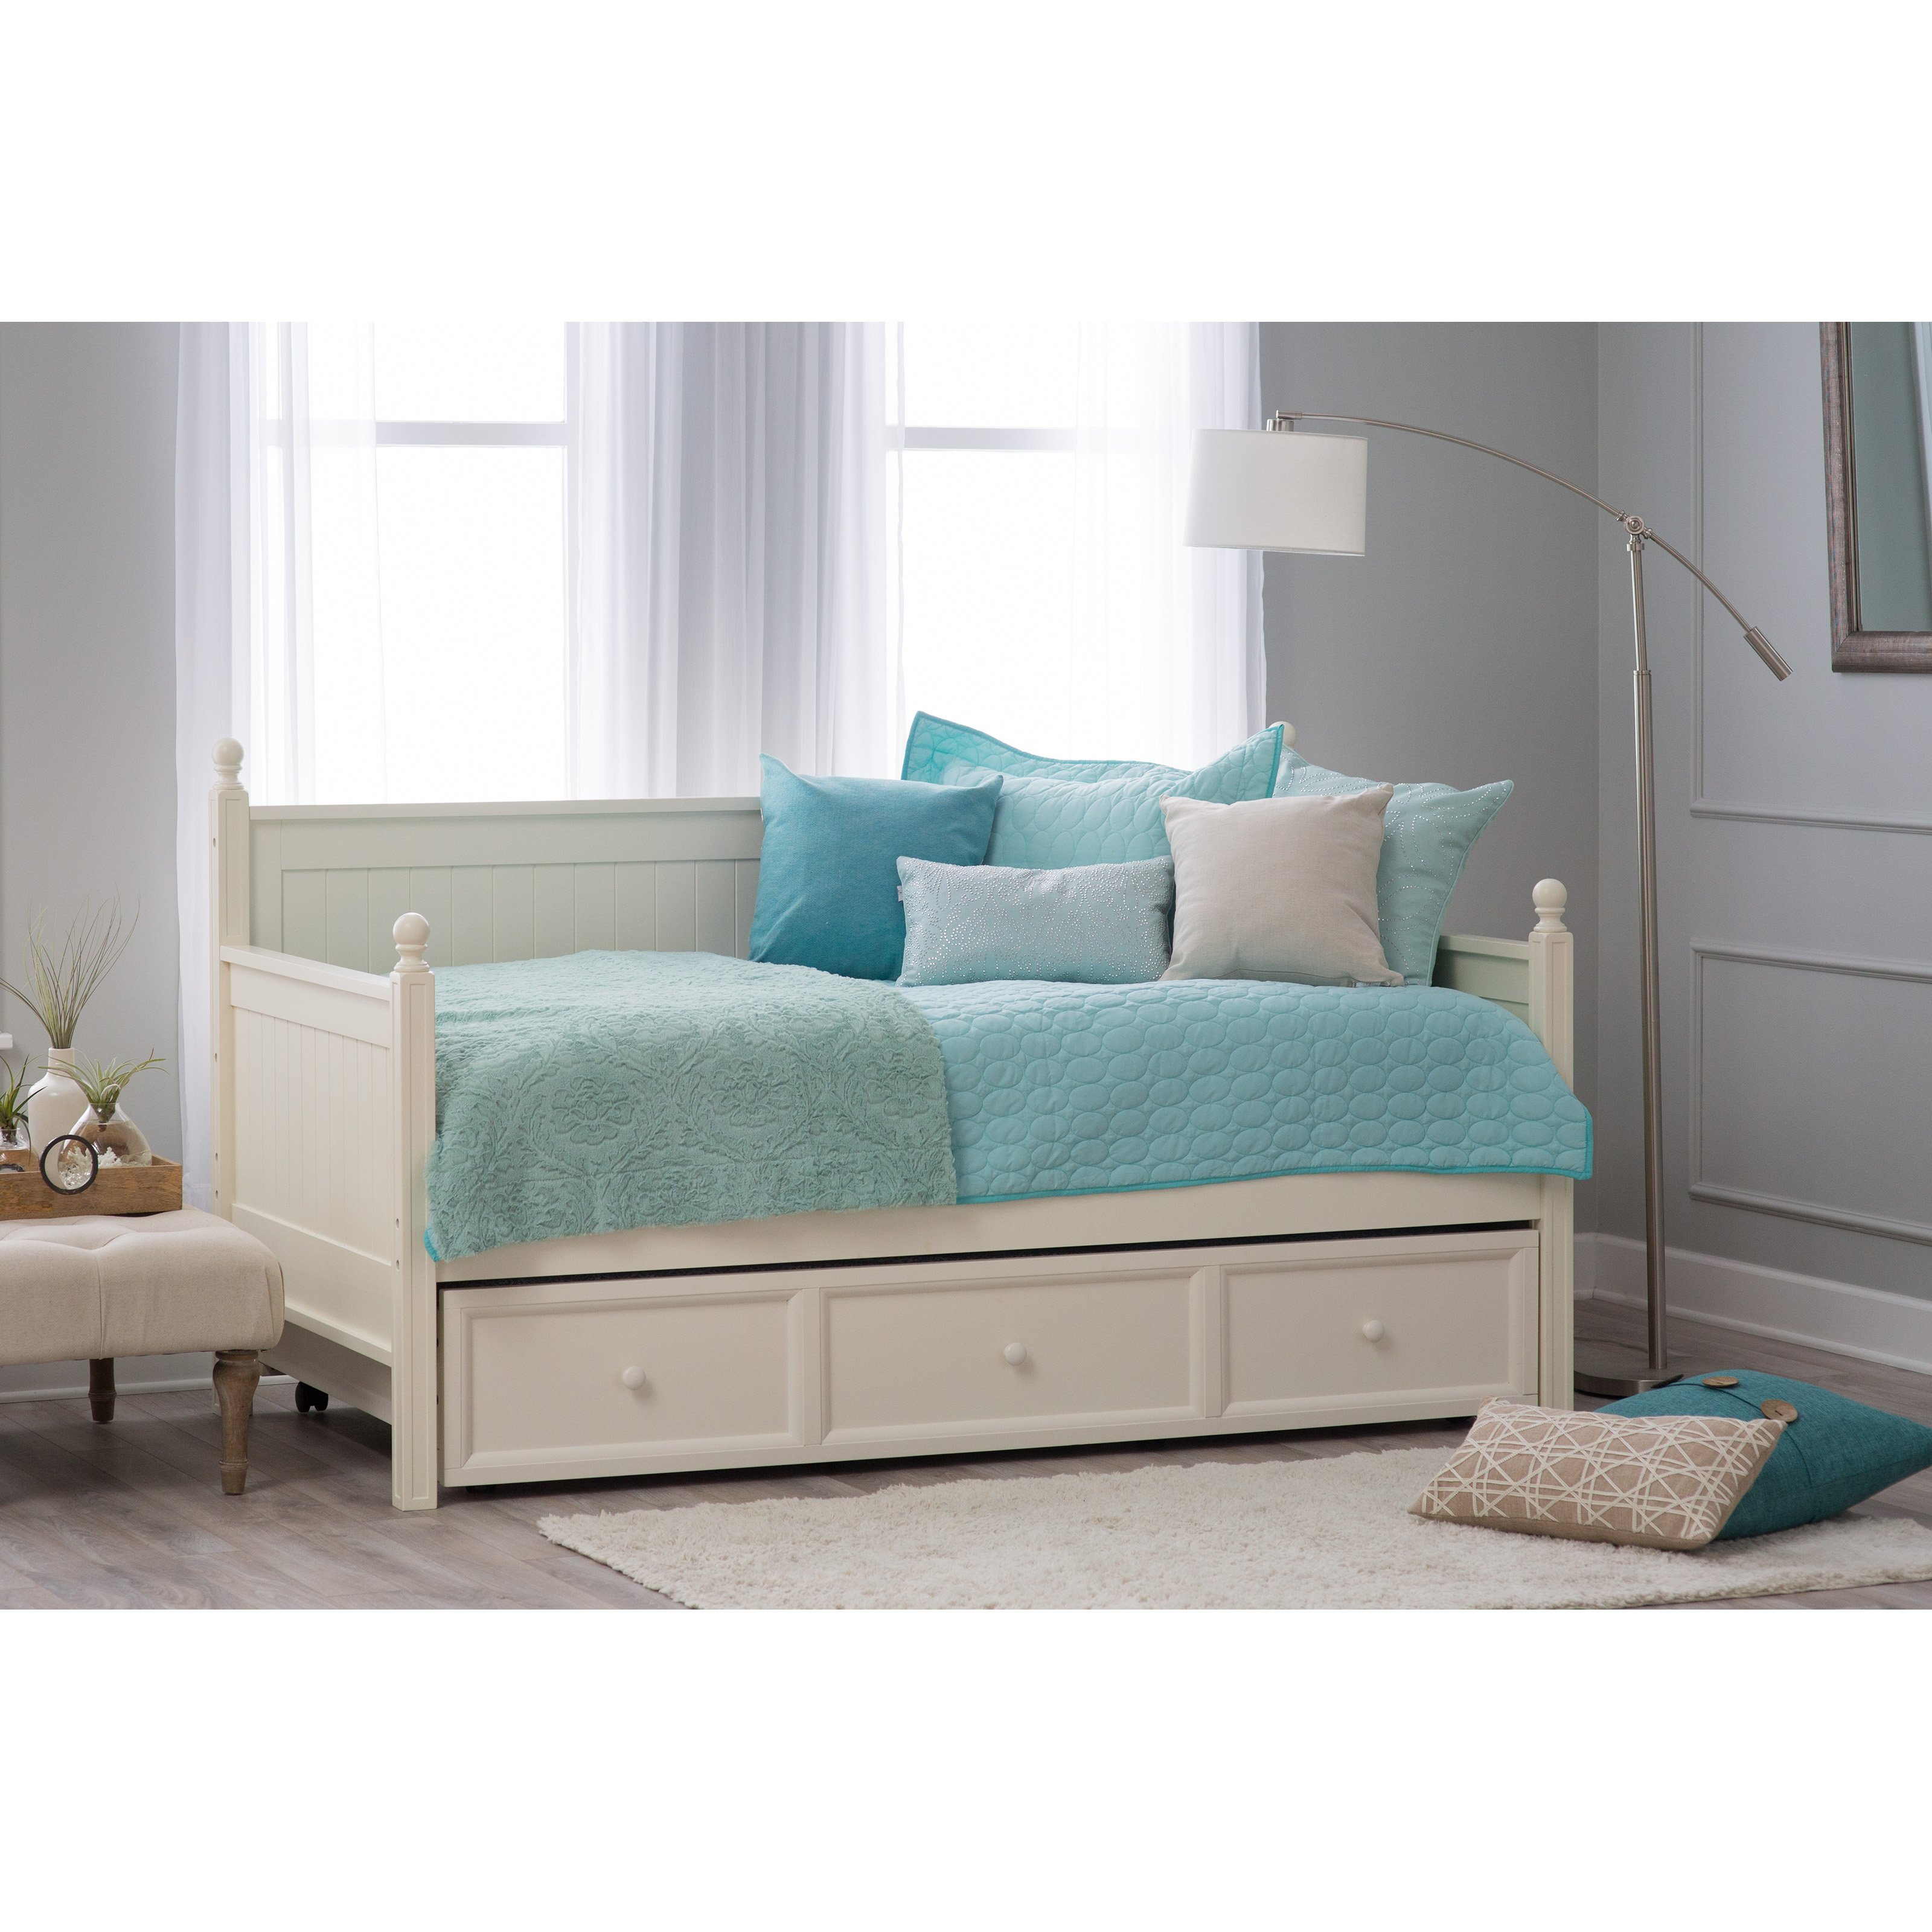 Cheap Day Beds Cheap Daybeds With Trundle And Modern